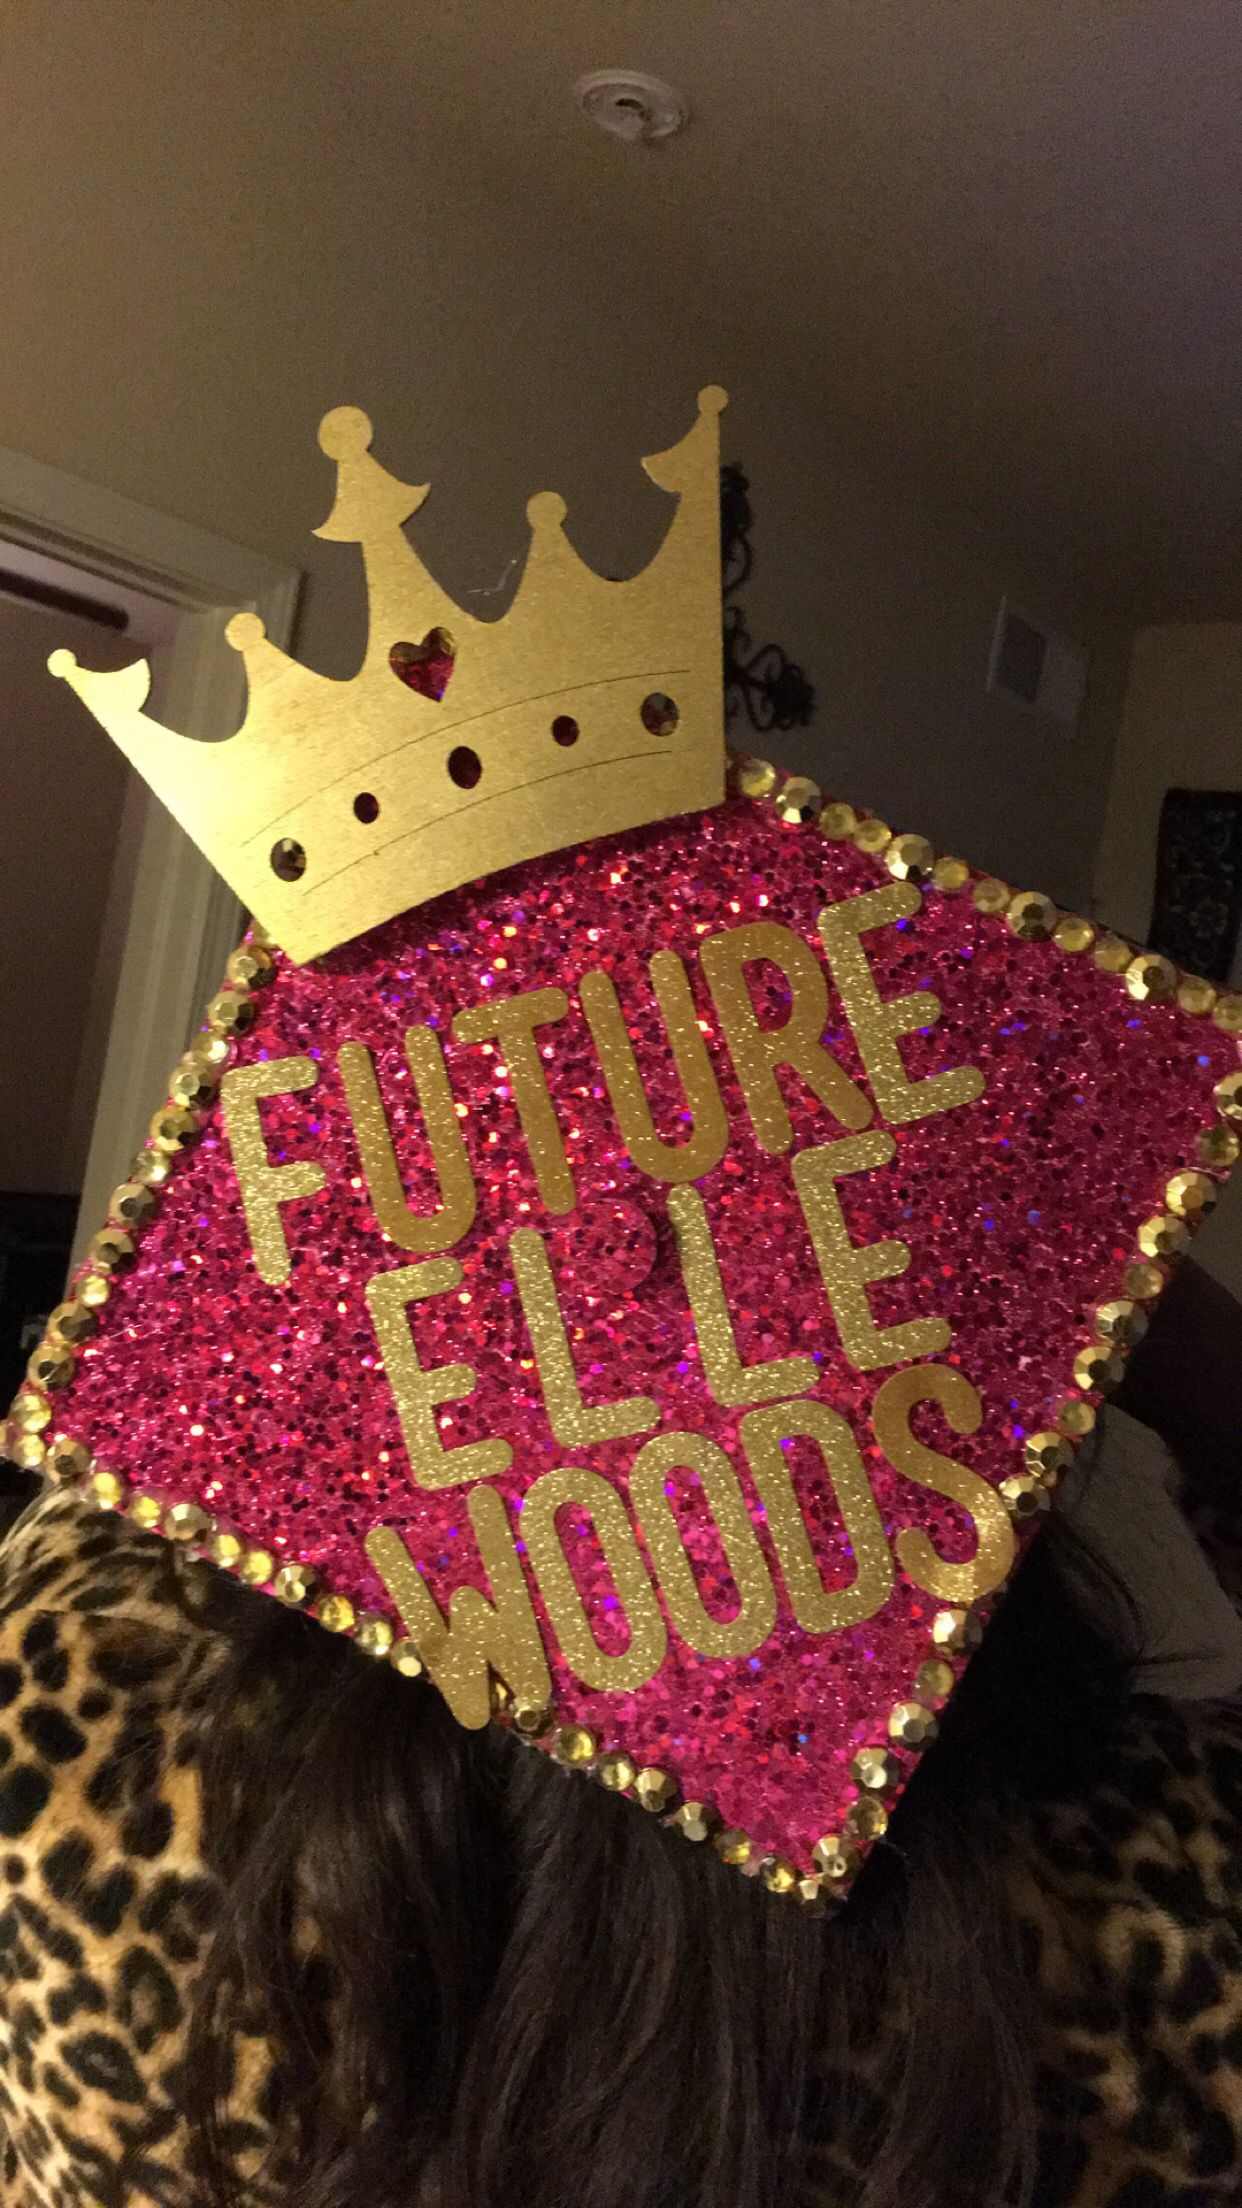 my college graduation cap inspired by my acceptance into law my college graduation cap inspired by my acceptance into law school and my admiration of elle